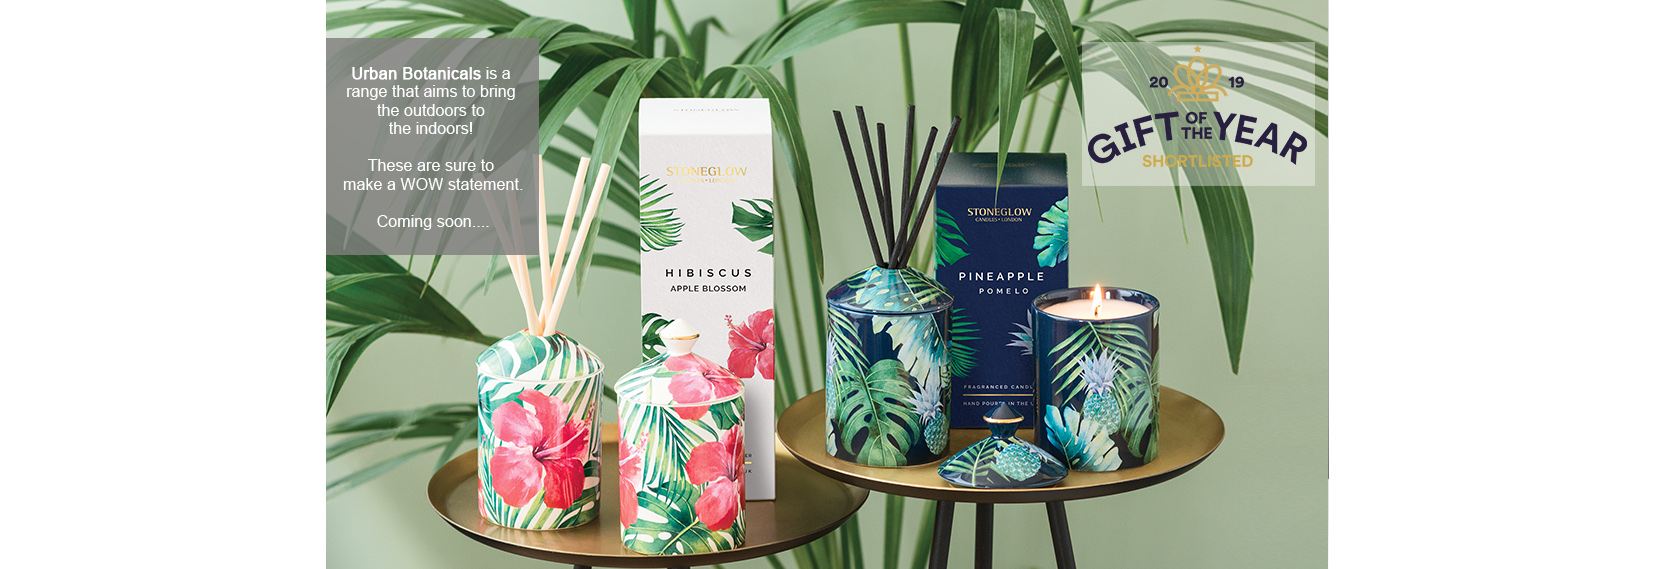 Urban Botanicals Scented Candles - Gift of the Year Shortlisted